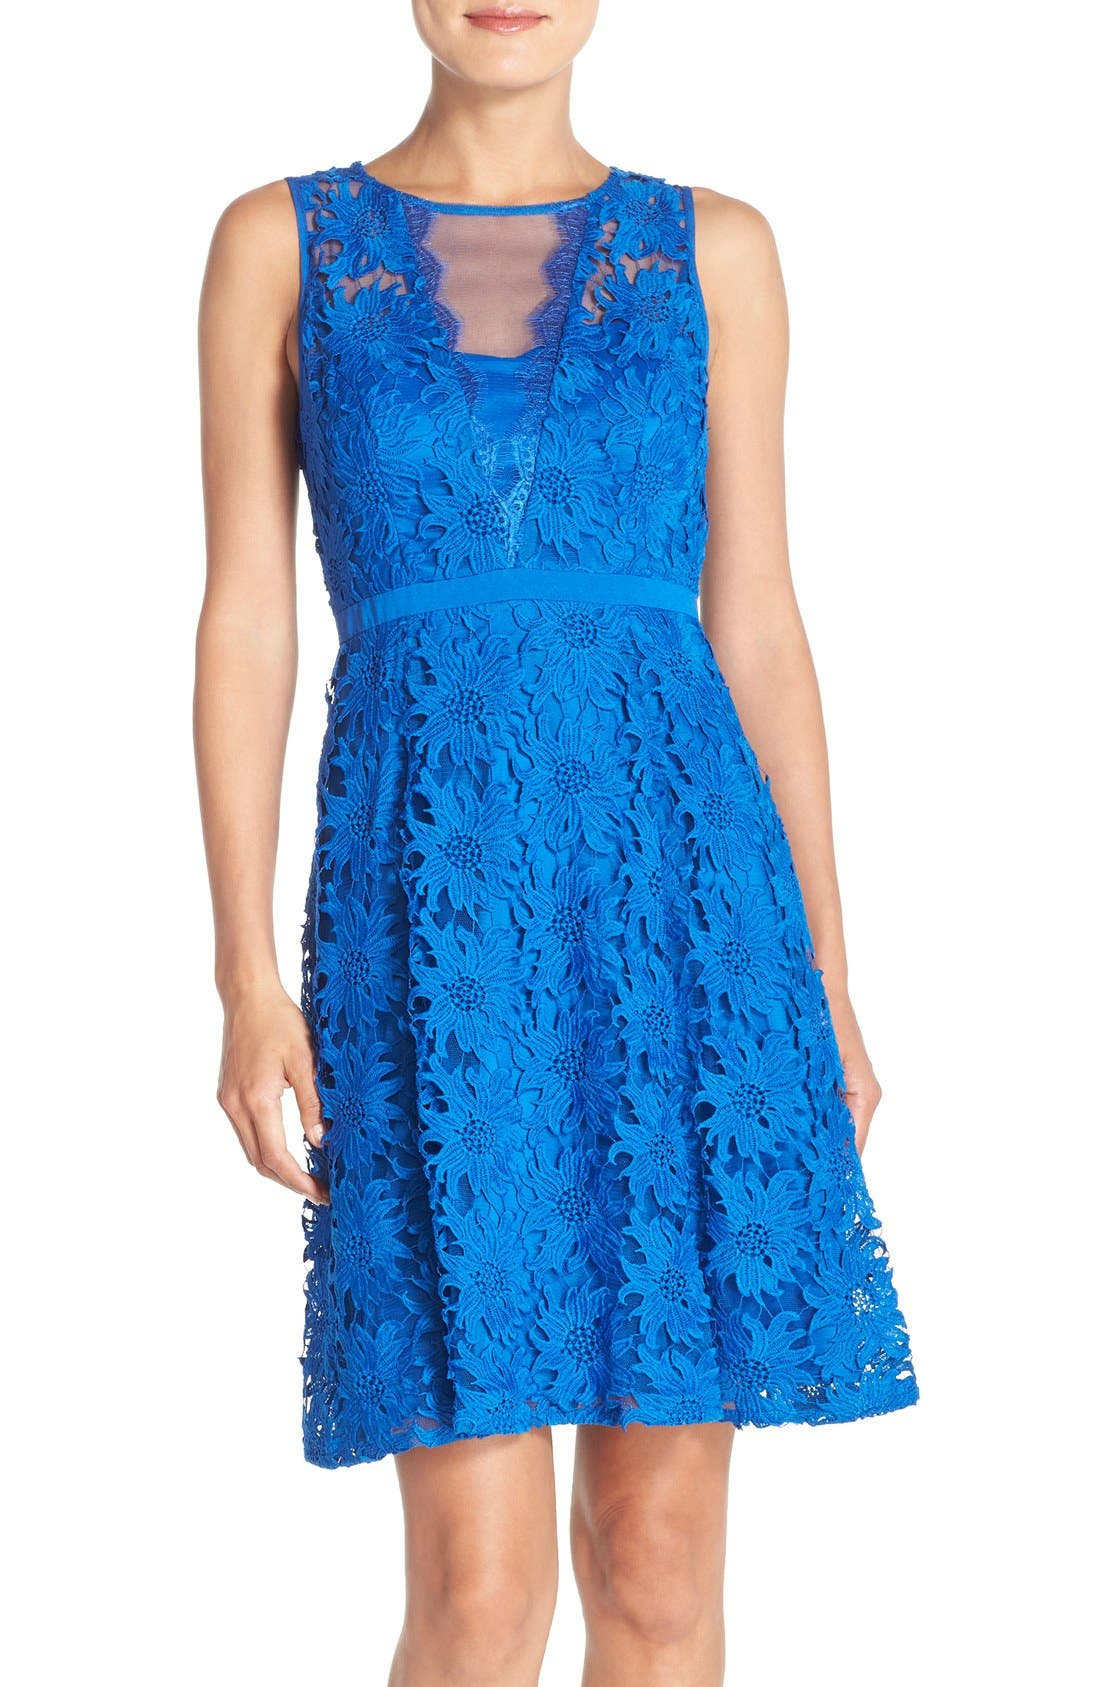 ADRIANNA PAPELL, Illusion Floral Lace Fit & Flare Dress, Main thumbnail 1, color, 433